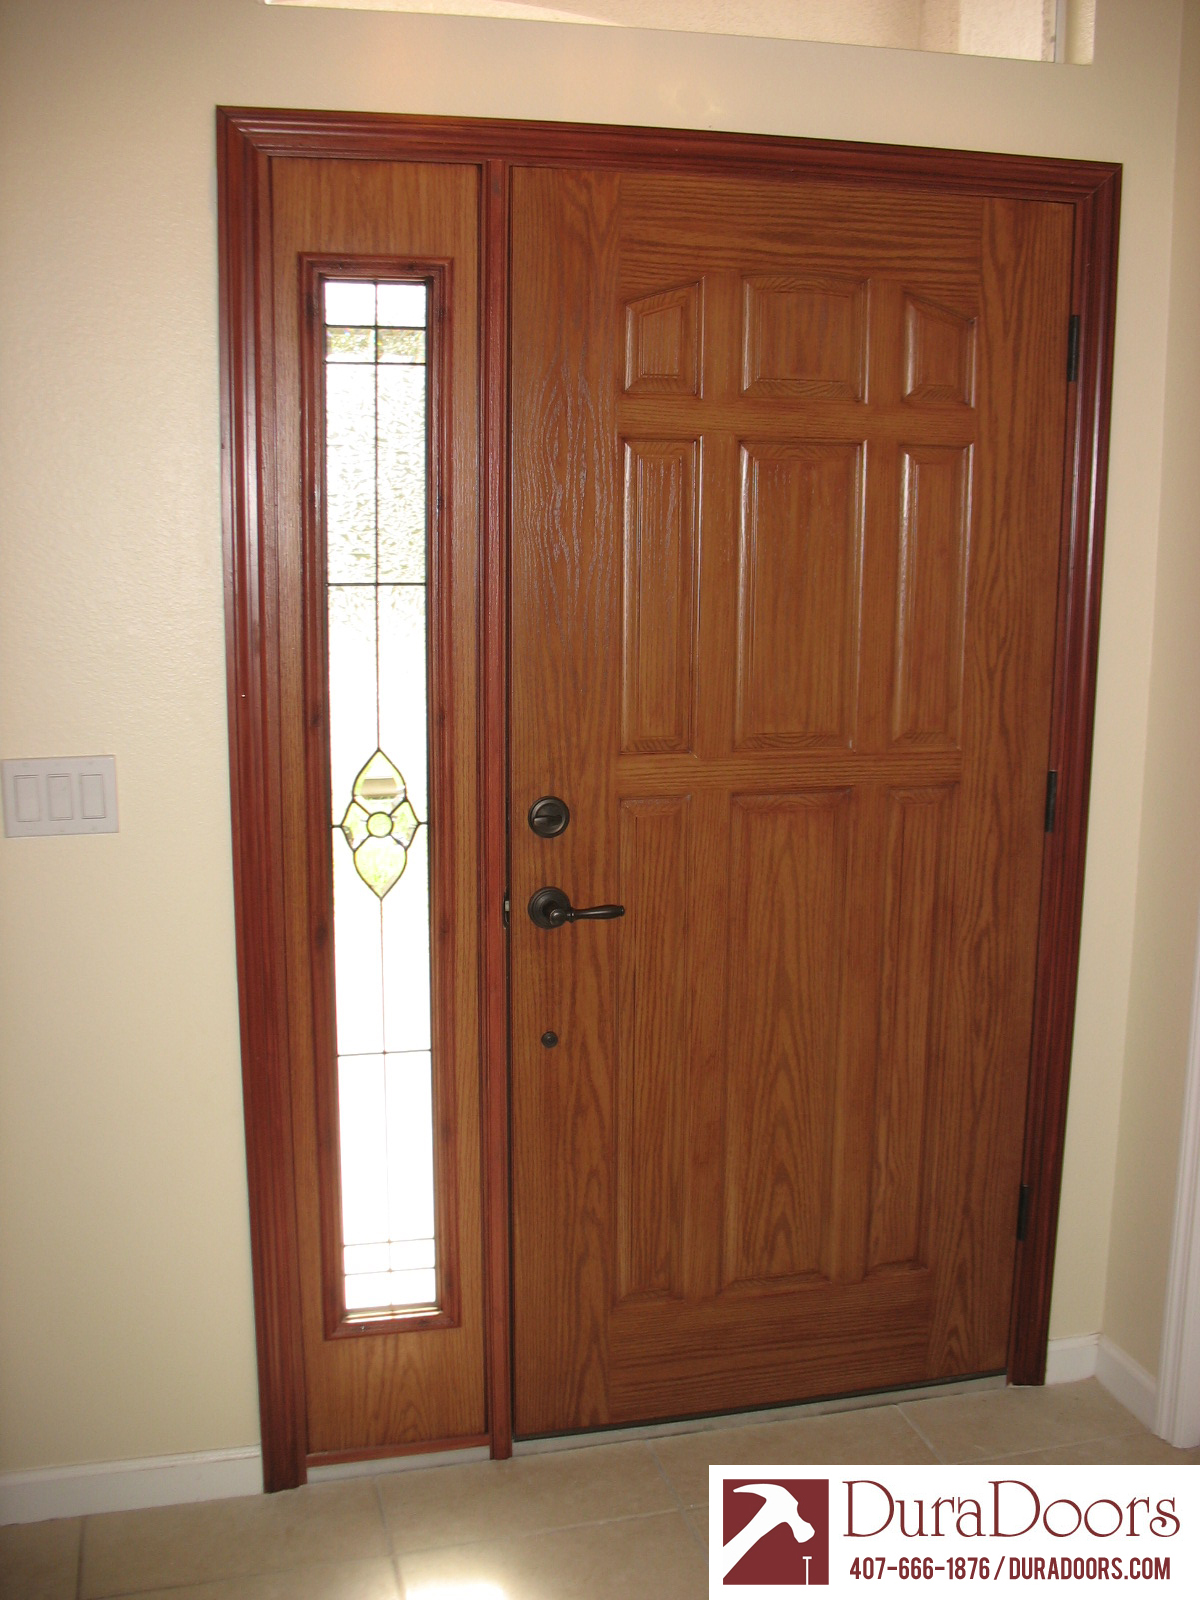 A client in Orlando FL recently had us replace an old entryway with a beautiful new one. The client selected a 9 panel door from Plastpro with a woodgrain ... & Plastpro Woodgrain Door and Sidelight with ODL Nouveau Decorative ... Pezcame.Com